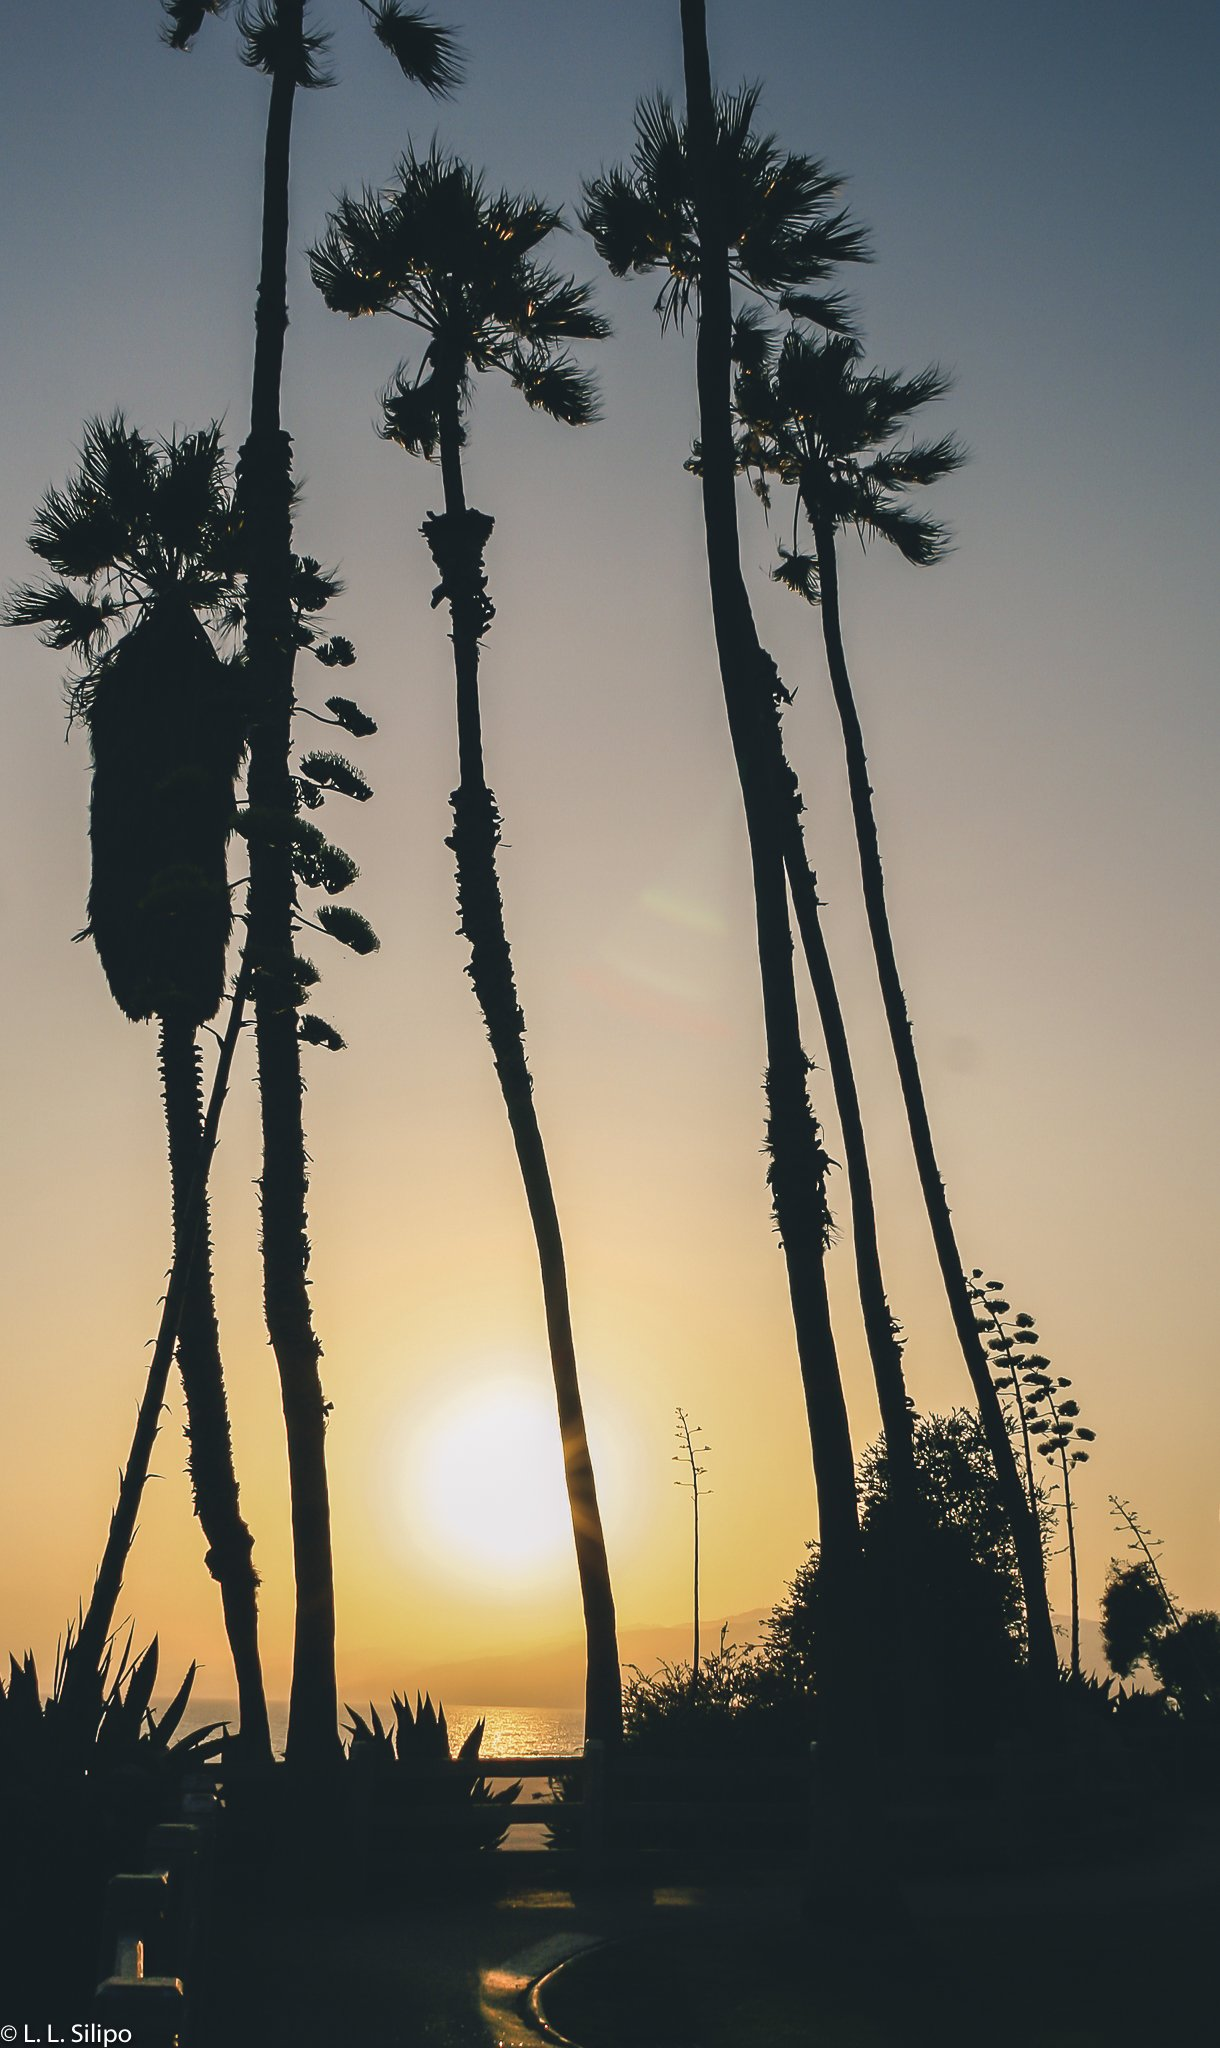 Angeles, California, Los, Monica, Santa, america, backlit, beach, coast, dawn, evening, landmark, landscape, los angeles, ocean, outdoors, pacific, palm, santa monica, santa monica beach, silhouette, sky, sunset, tree, usa